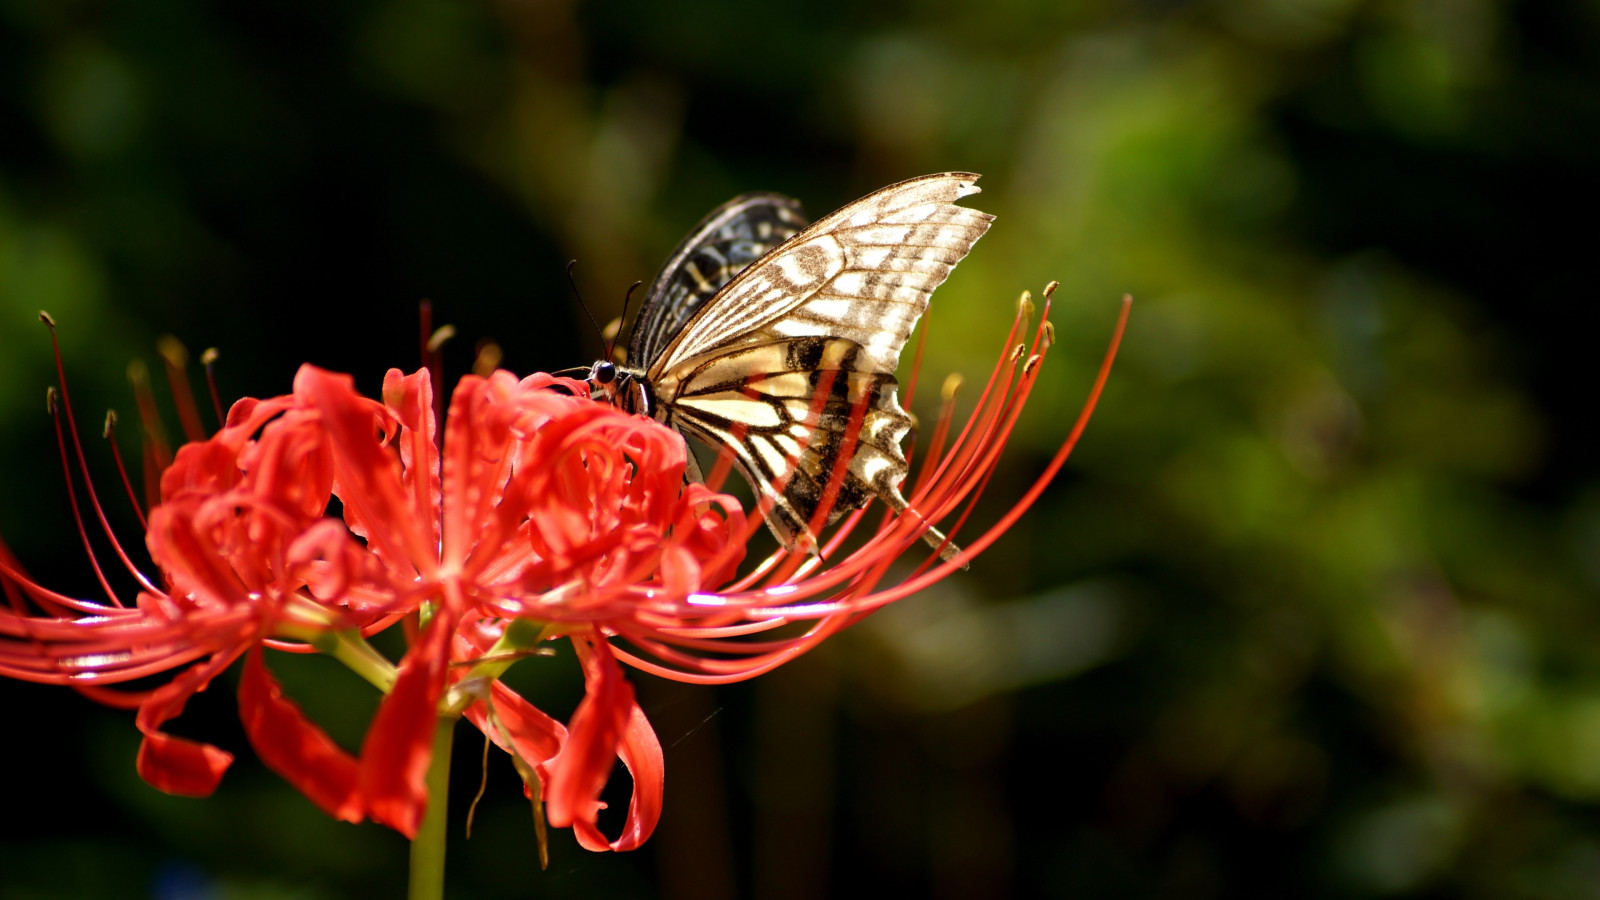 Butterfly on Lycoris Radiata flower wallpaper 1600x900